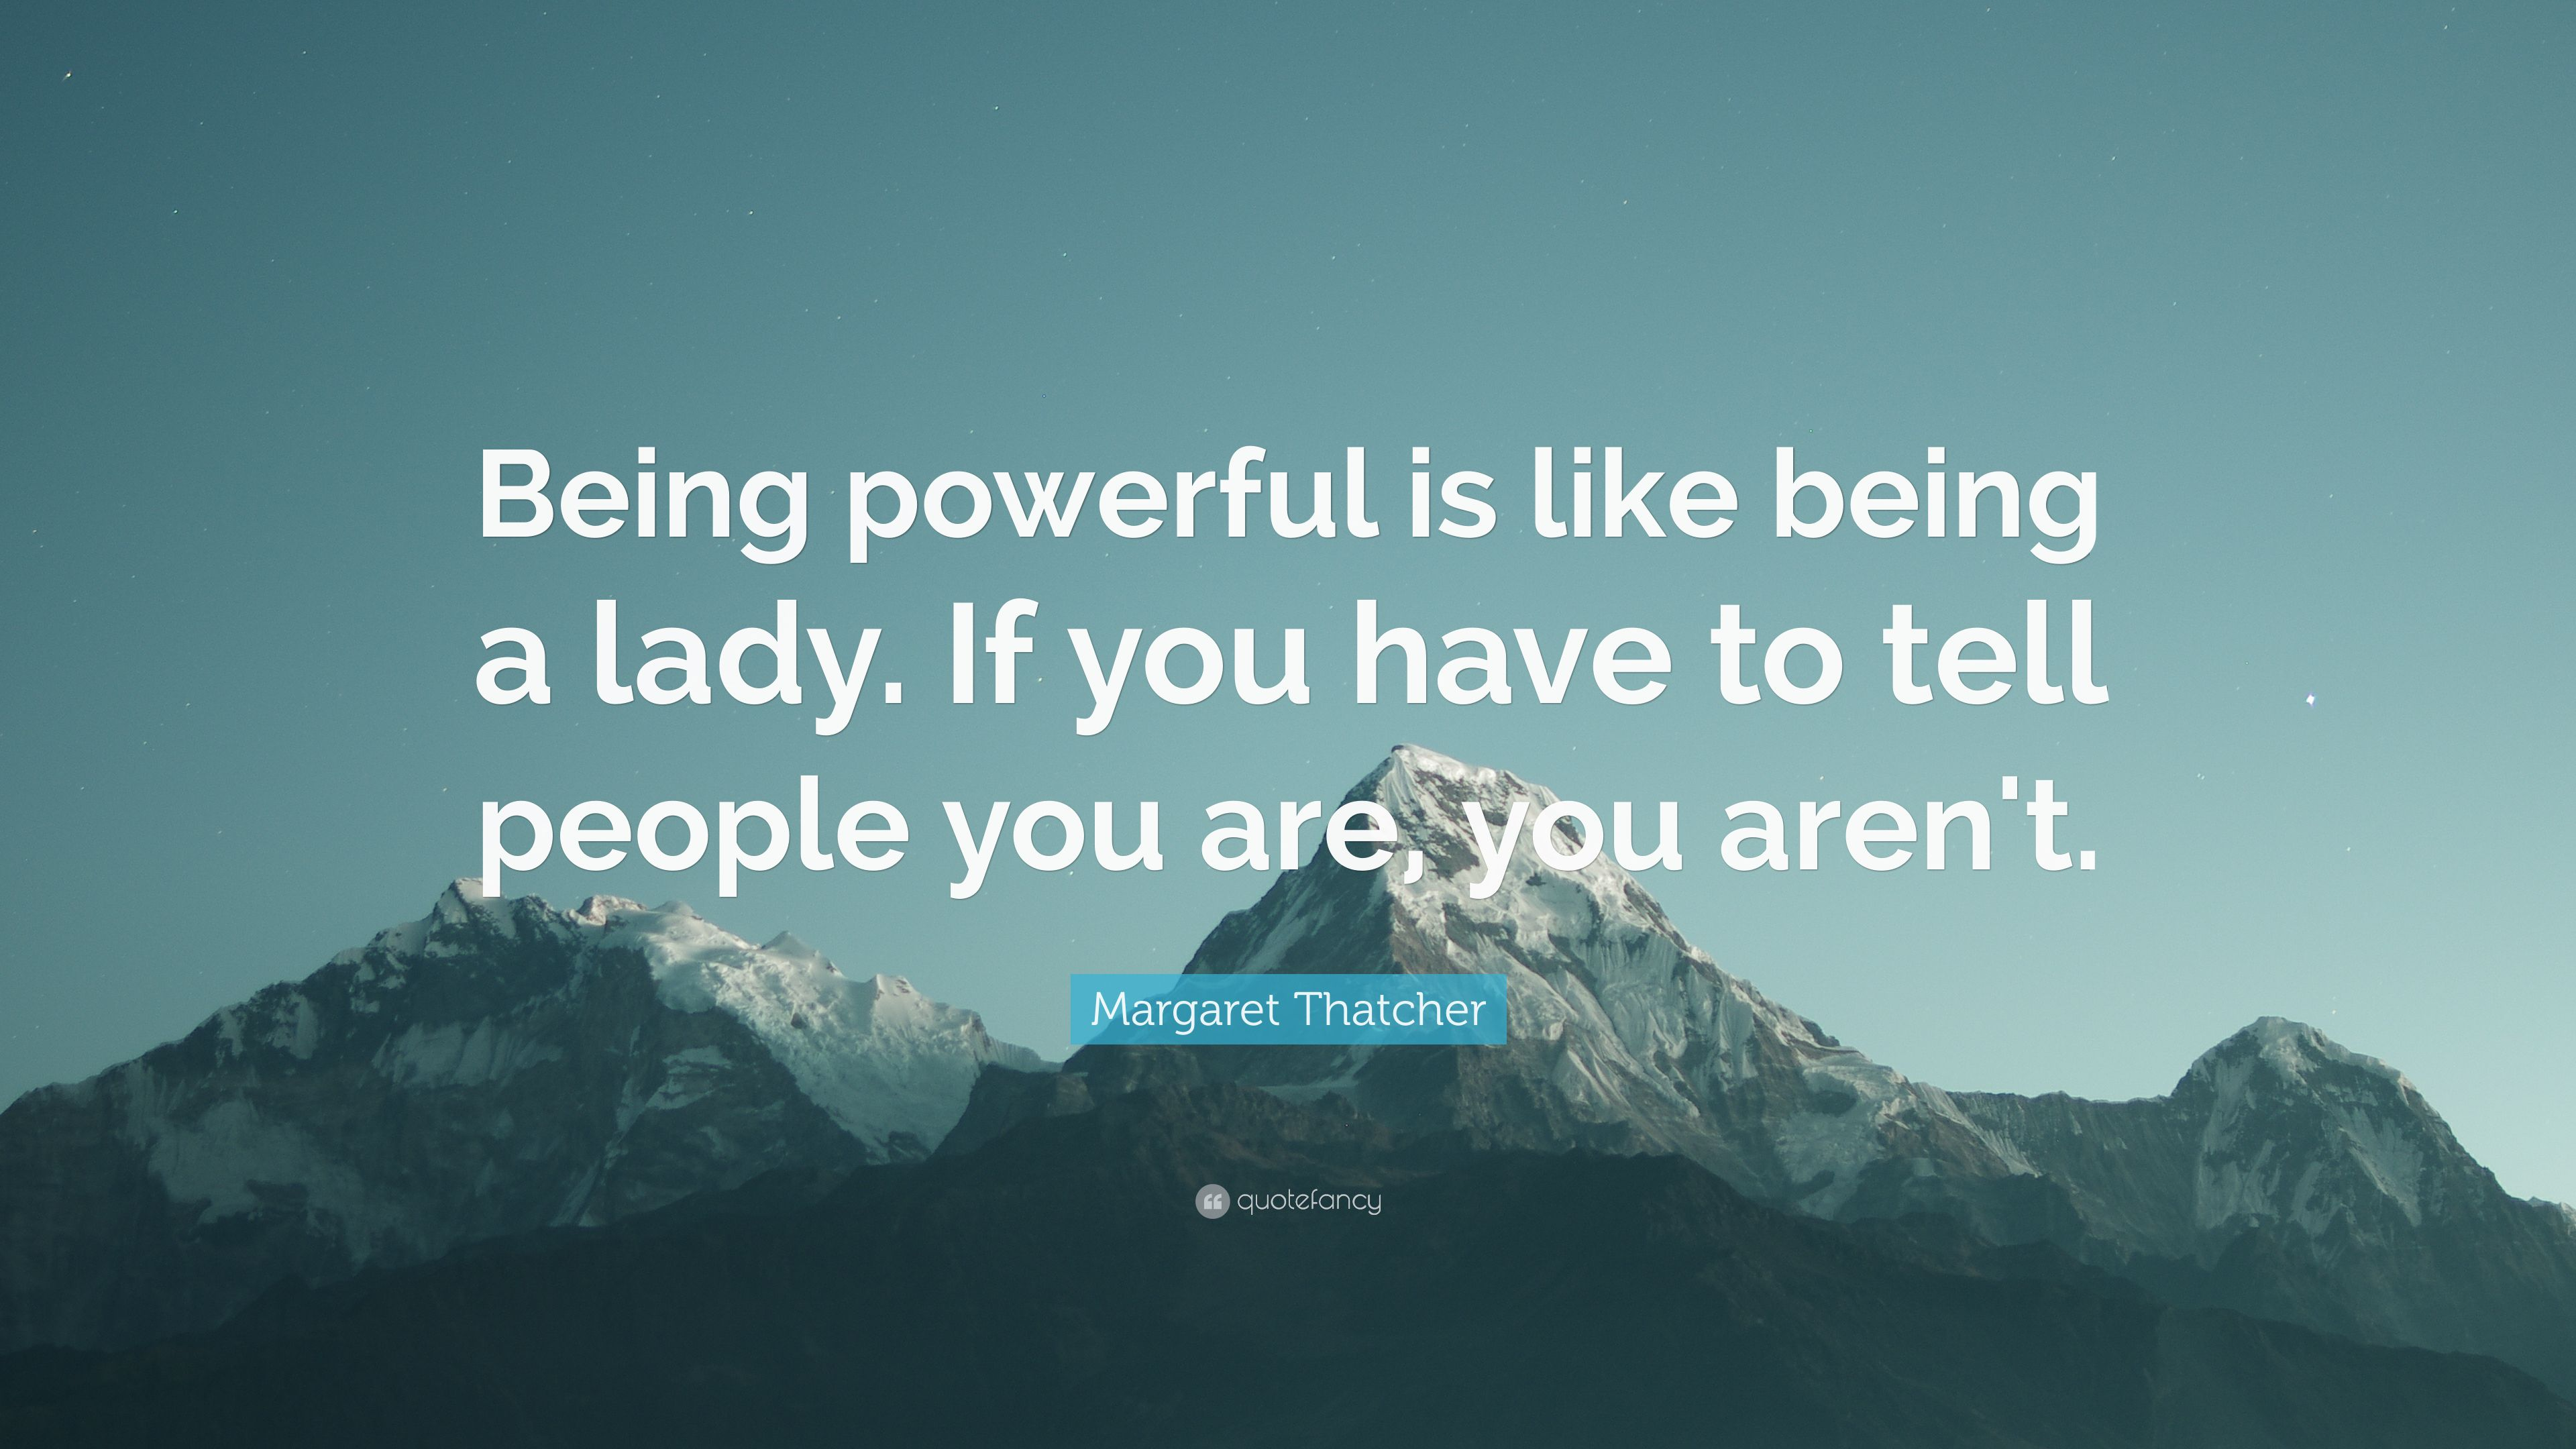 Being powerful is like being a lady essay